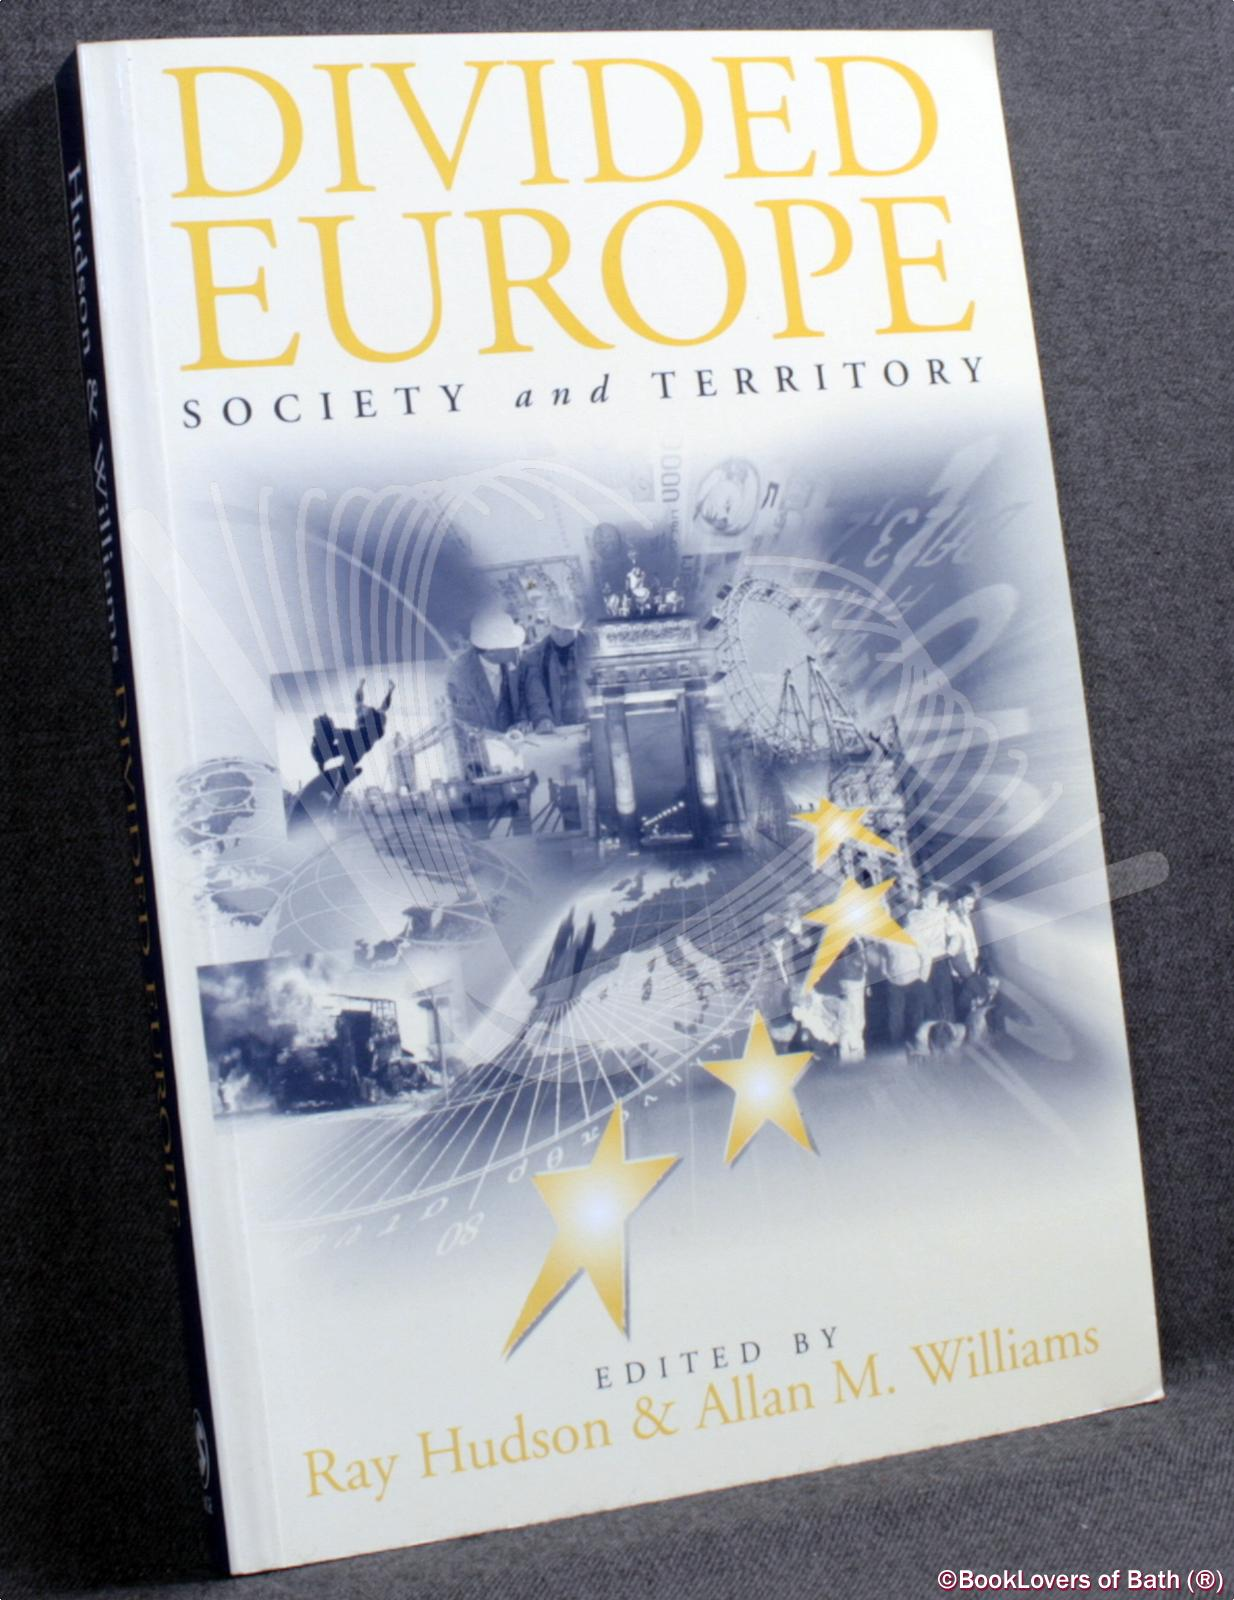 Divided Europe: Society and Territory - Edited by Ray Hudson & Allan M. Williams